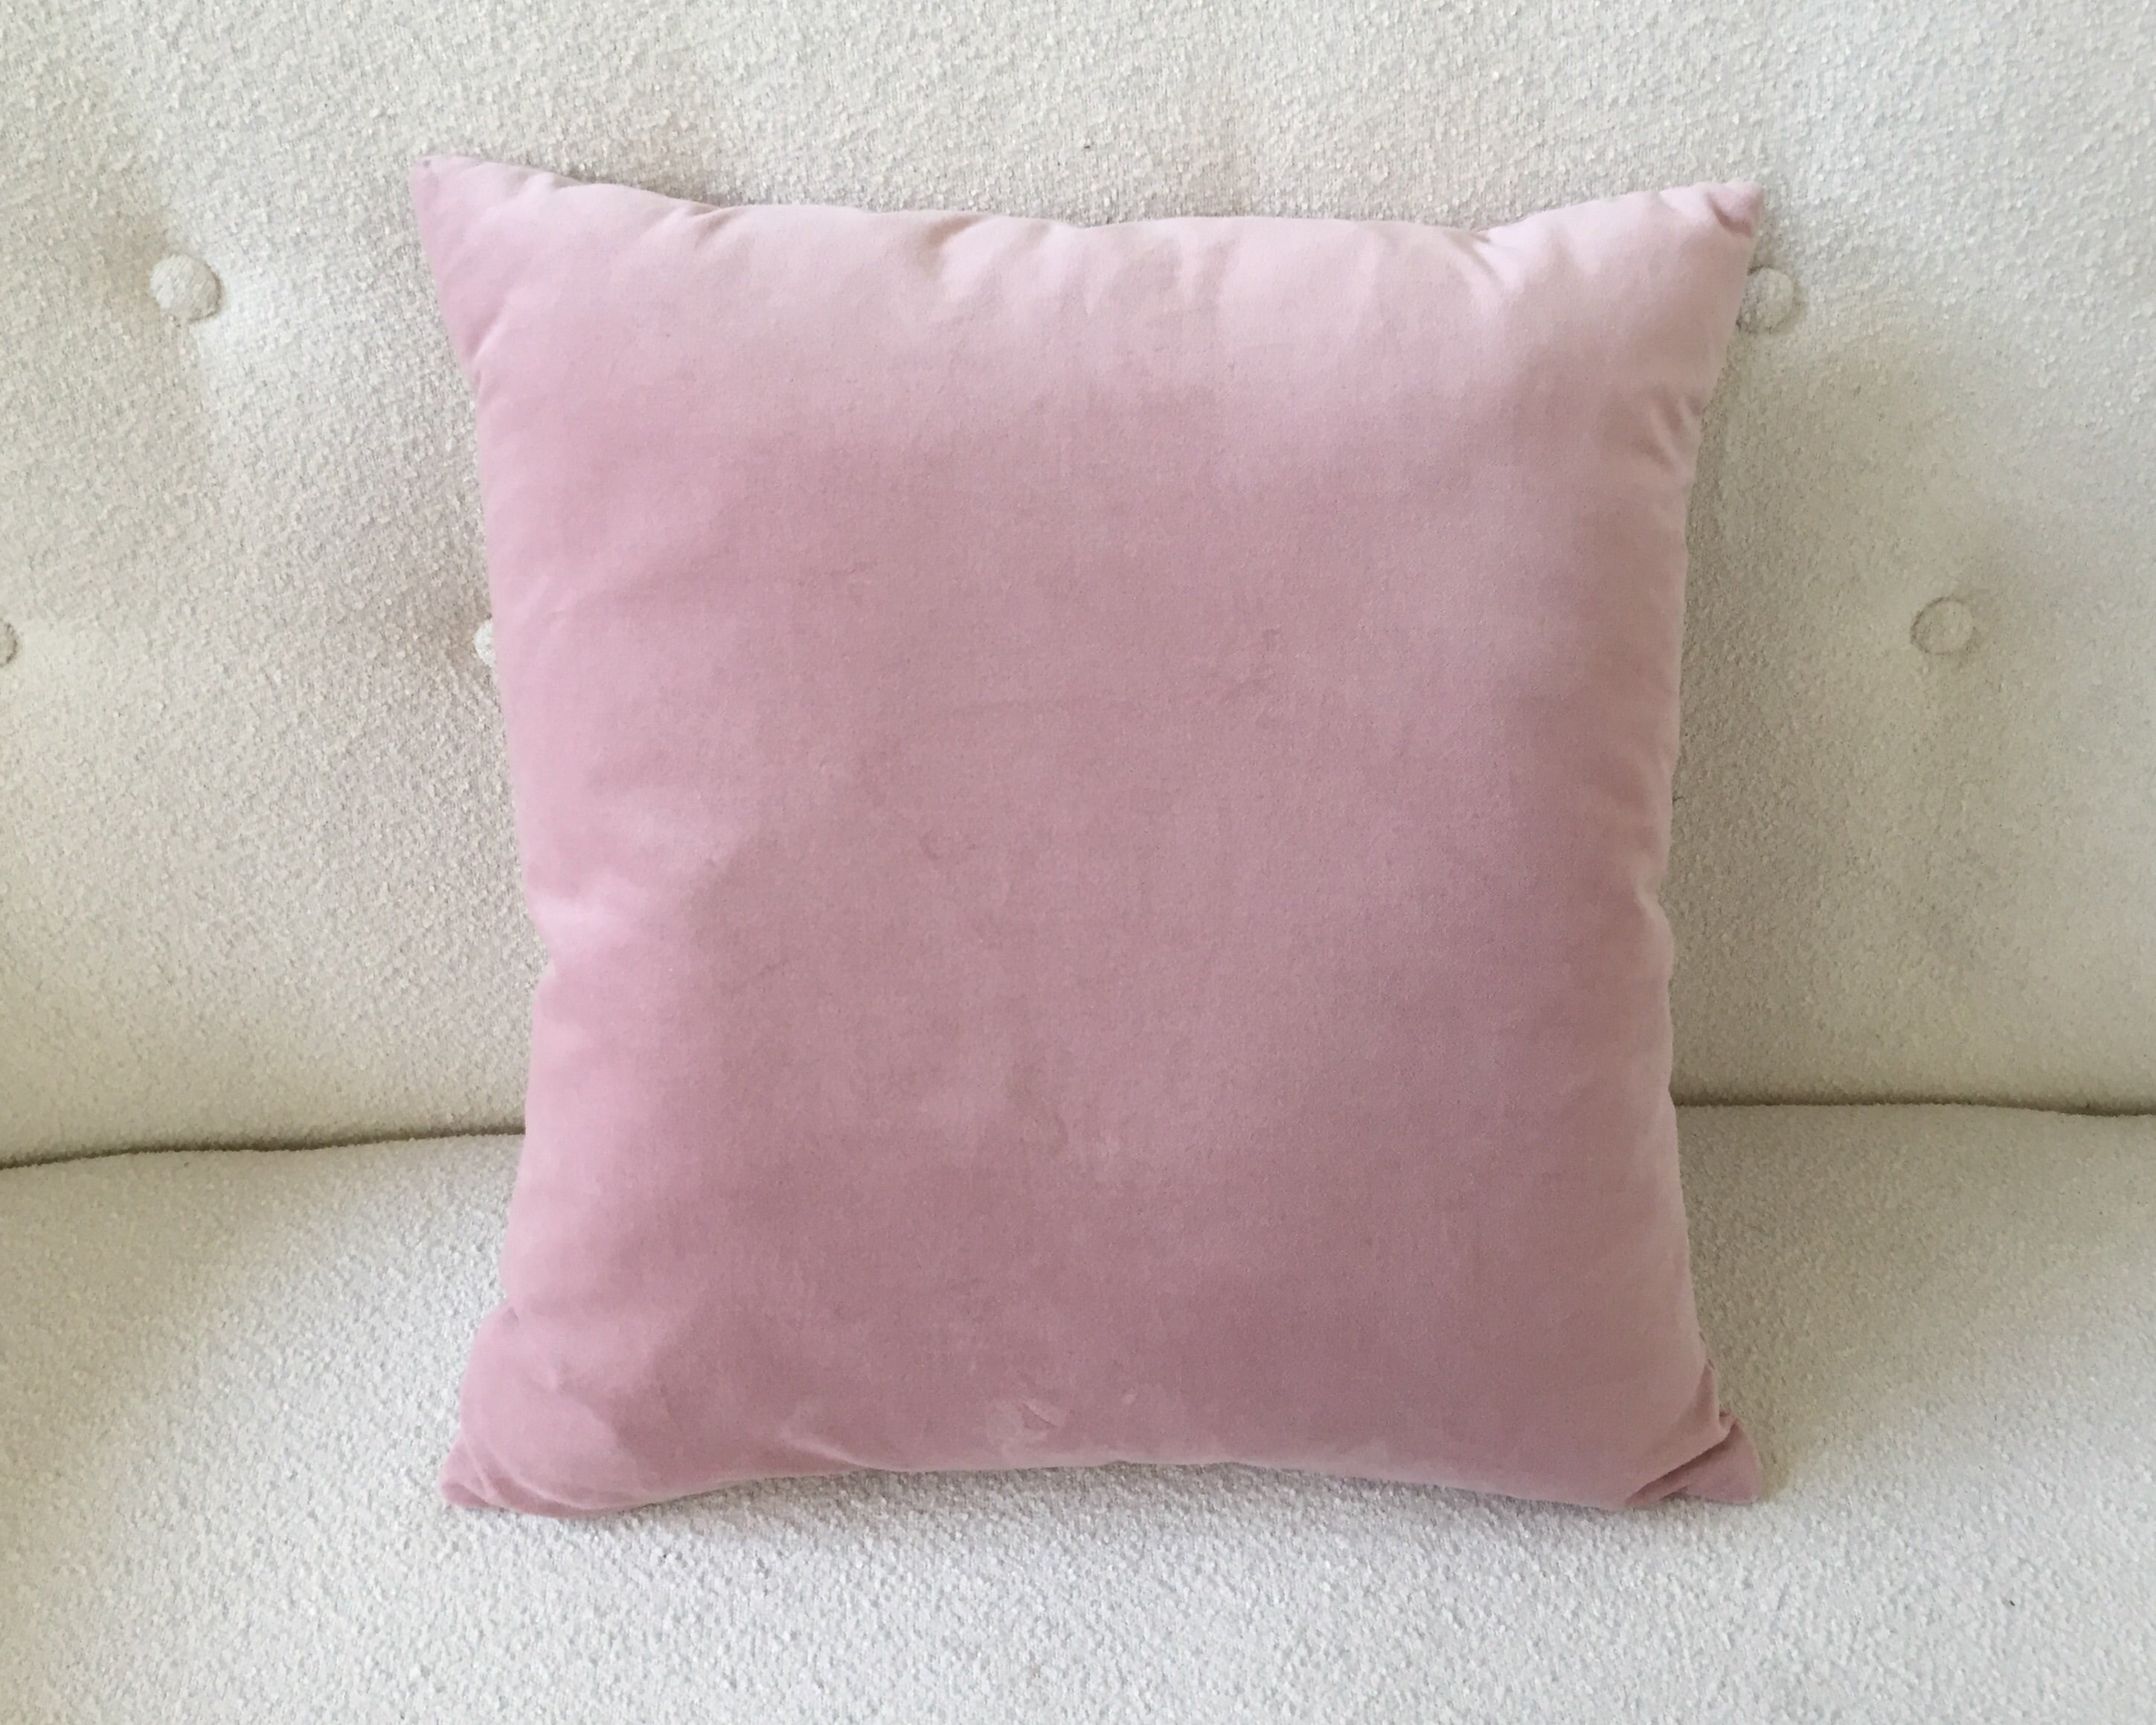 comforter pillow set p reversible floral pale pillows throw blush ruffled square anna piper wright pink bedding by